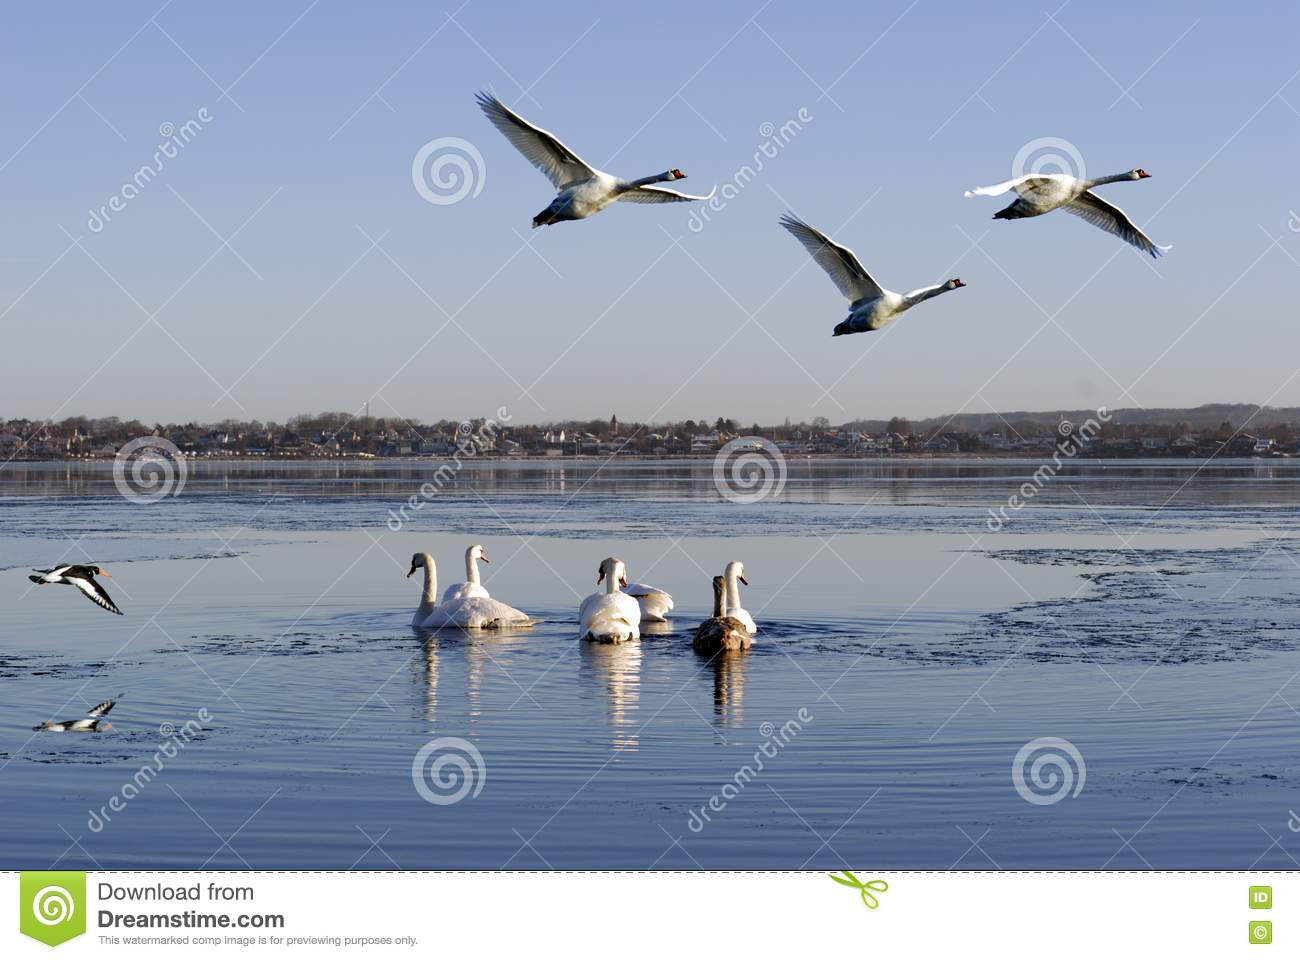 Stock Photography Birds Flying Swimming Image17683102